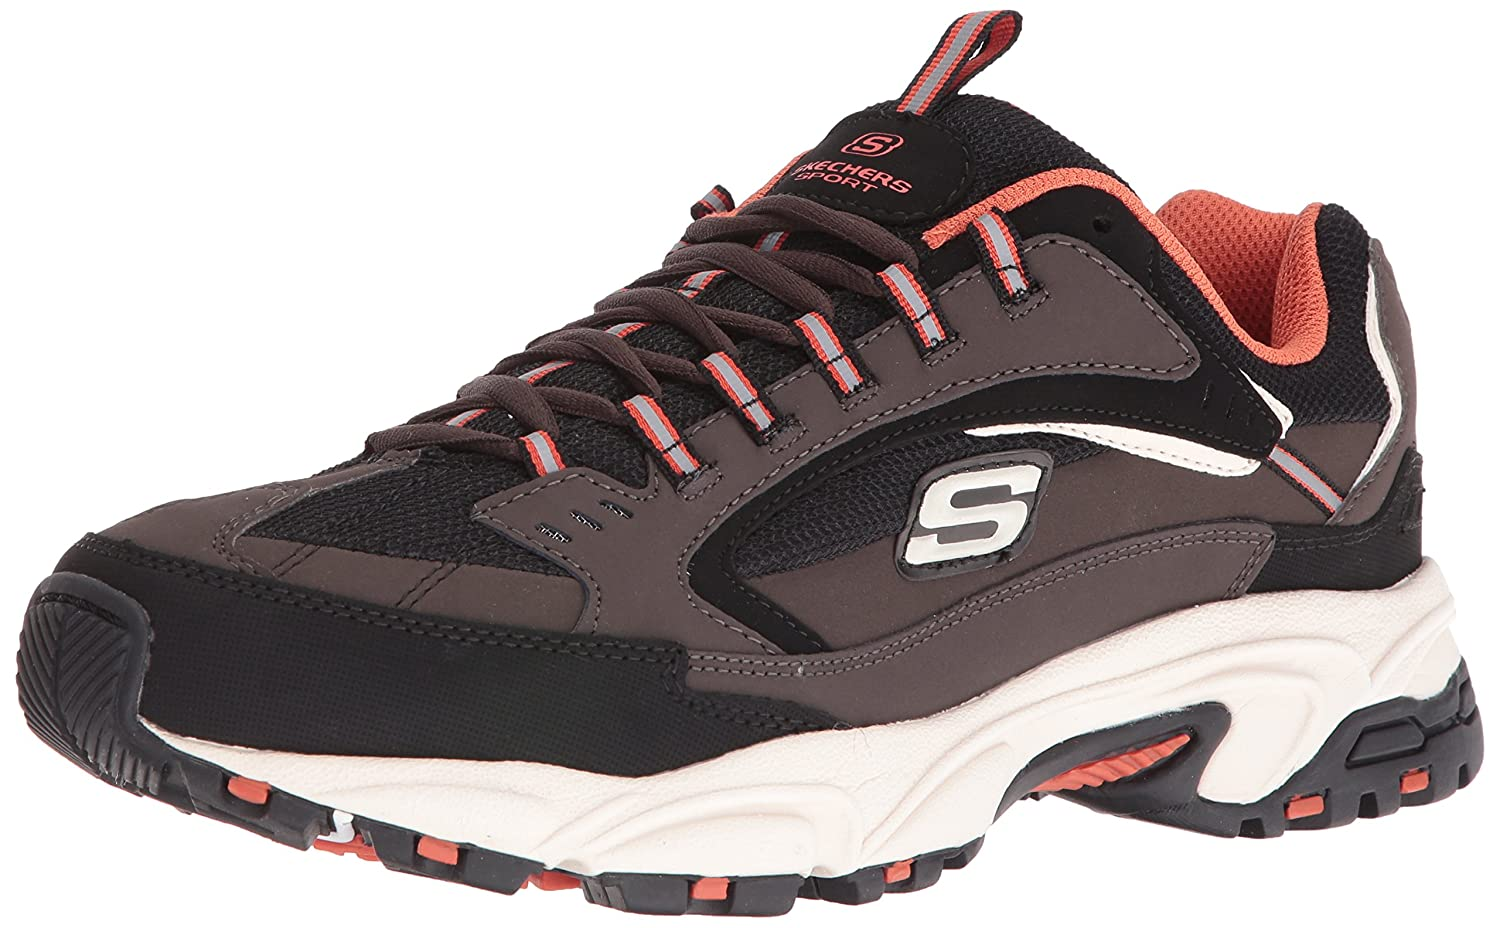 Skechers Sport Men's Stamina Nuovo Cutback Lace-Up Sneaker 50988